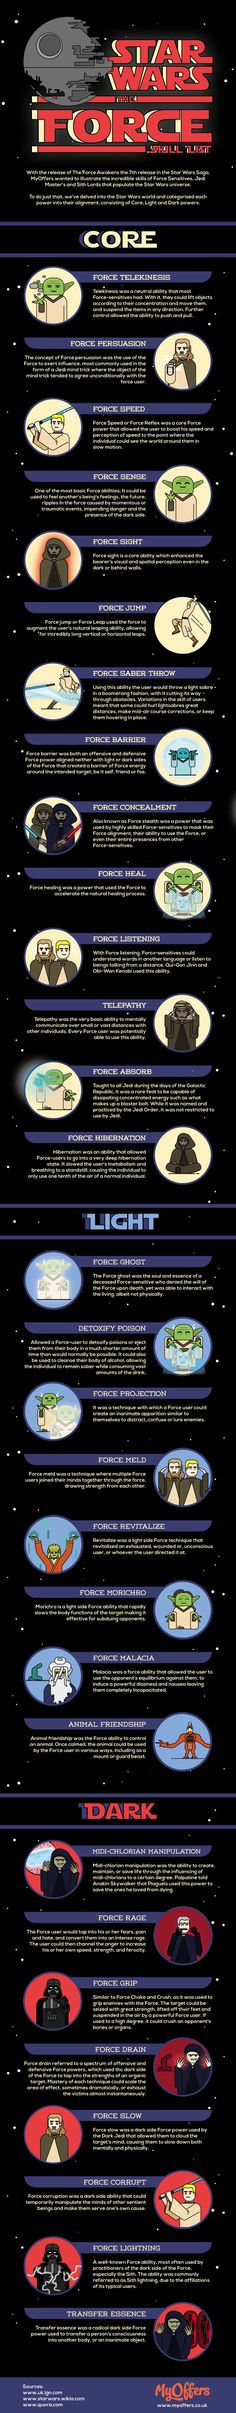 The Skill List: Infographics Of The Incredible Star Wars Force Skills | Bored Panda